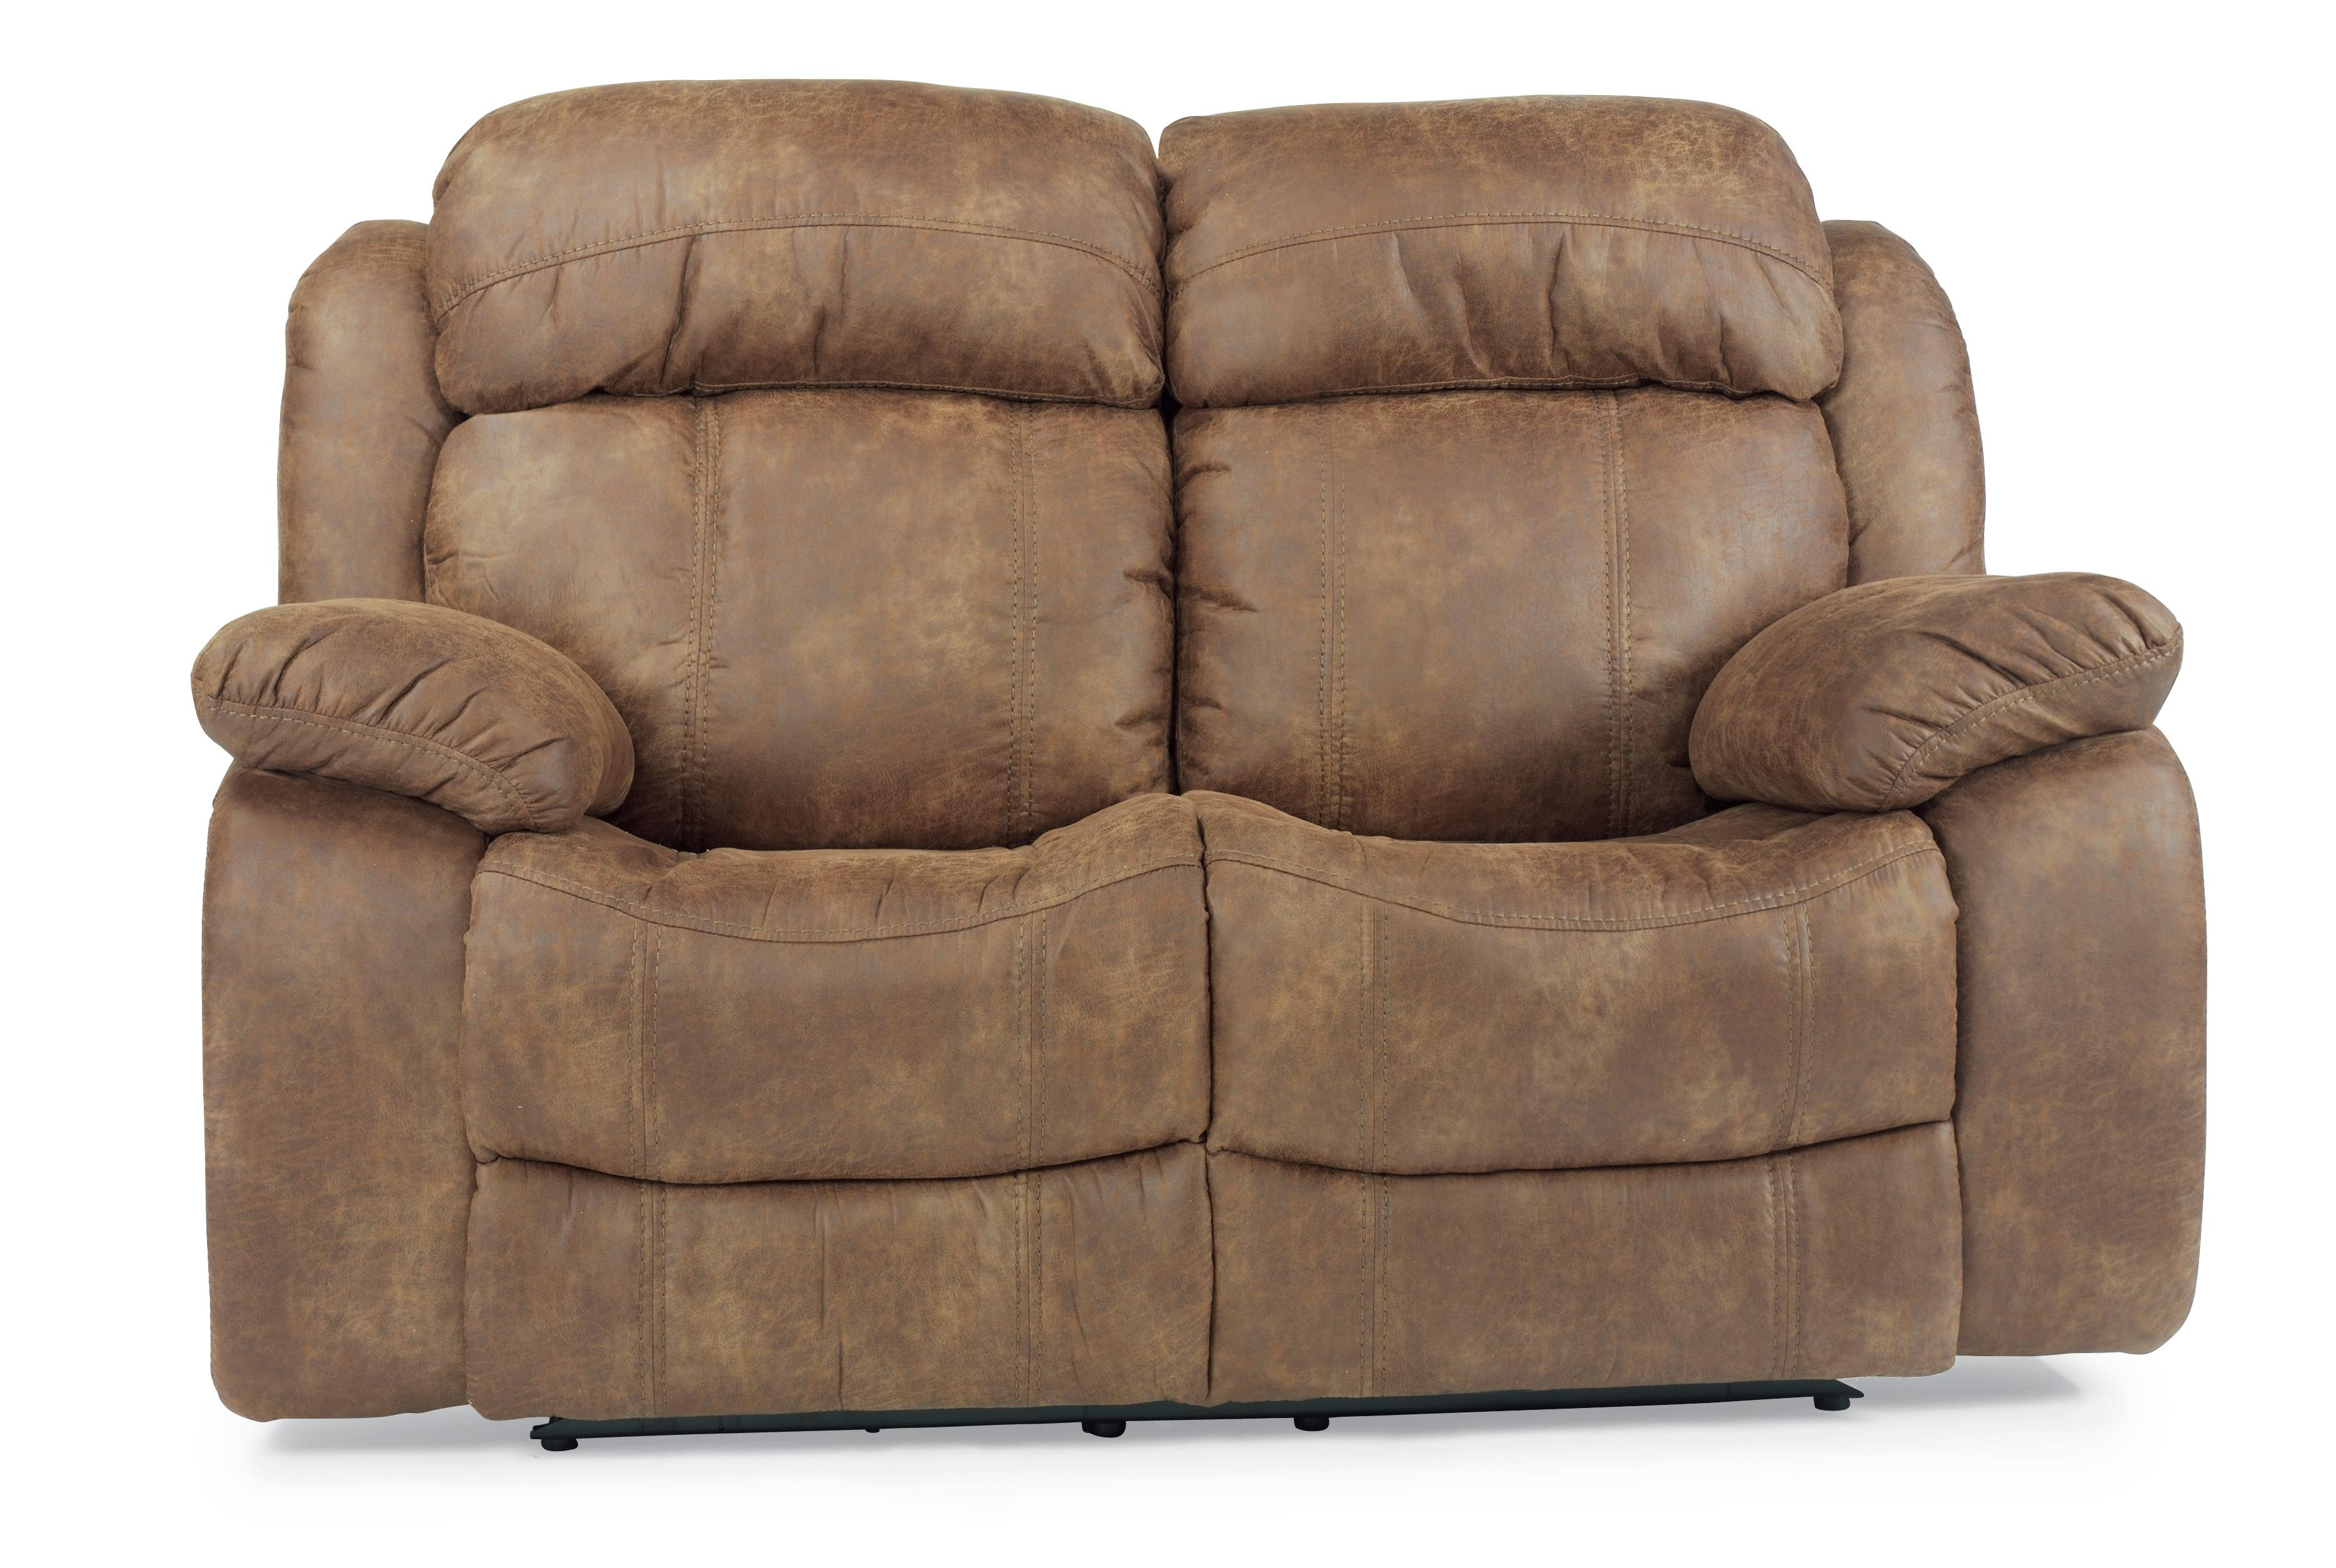 Flexsteel Latitudes Como Dual Reclining Loveseat Wayside Furniture Reclining Love Seats